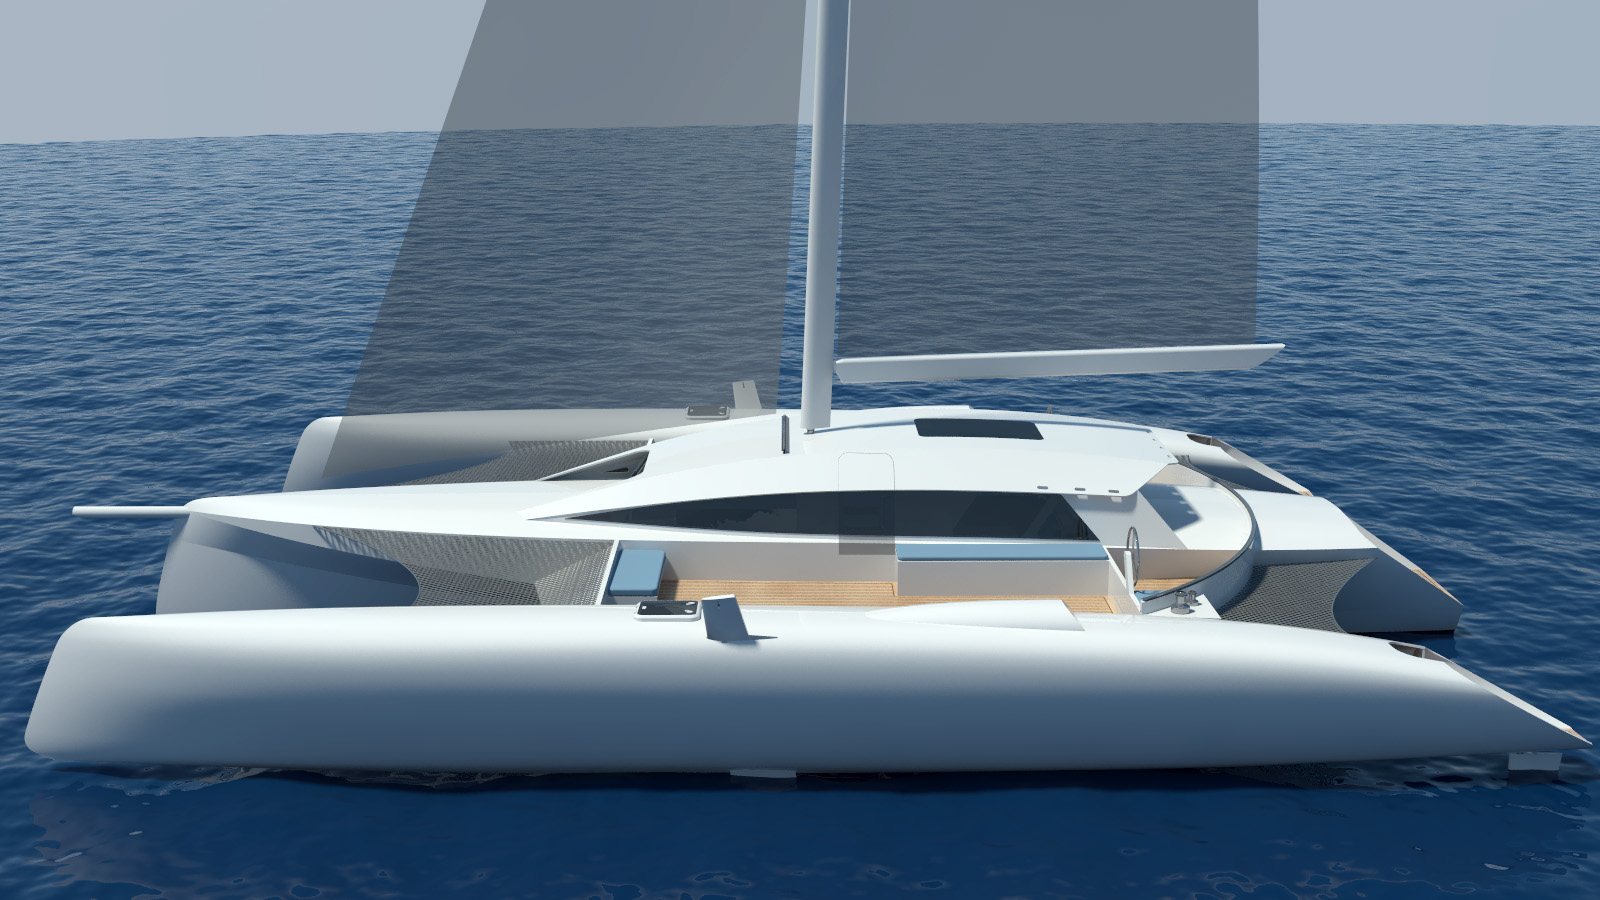 Video & Pictures: The new performance cruising trimaran, Tracer 1500TRi - YBW